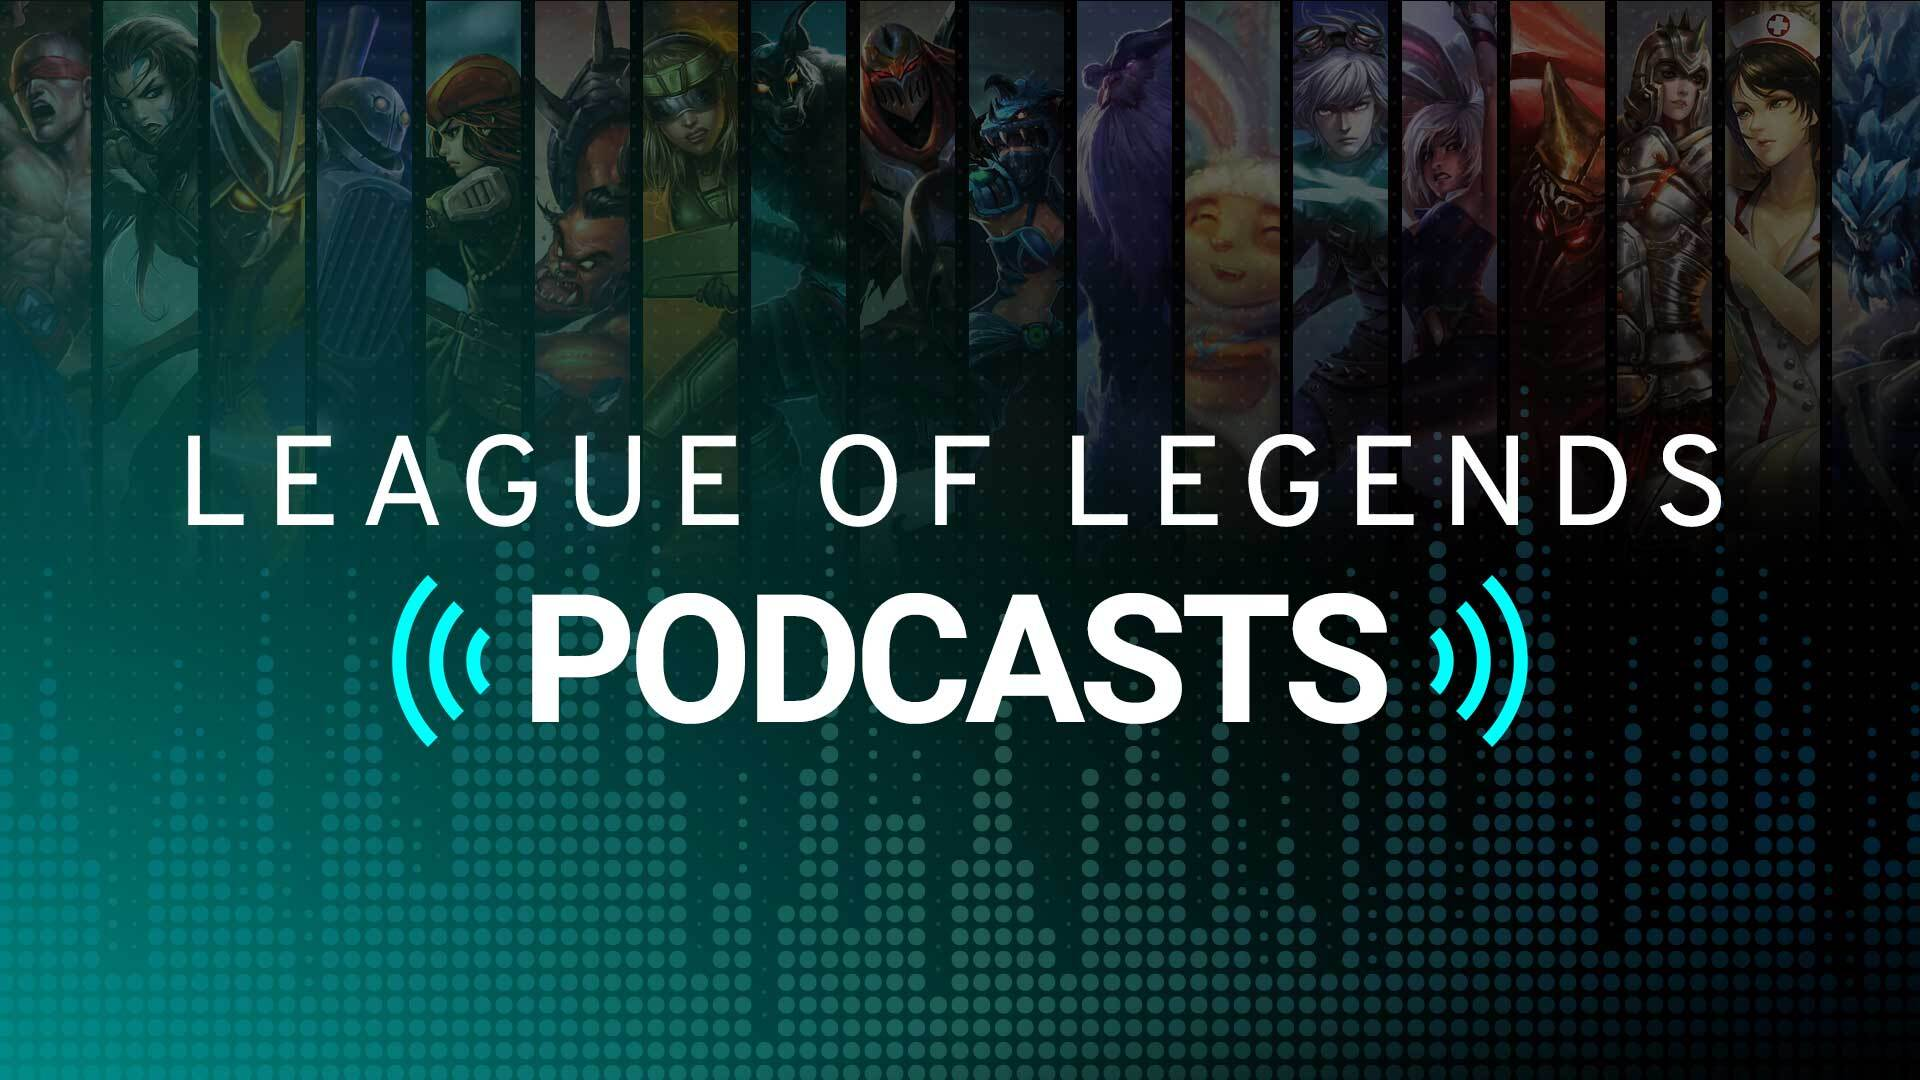 Top 5 Best League of Legends Podcasts